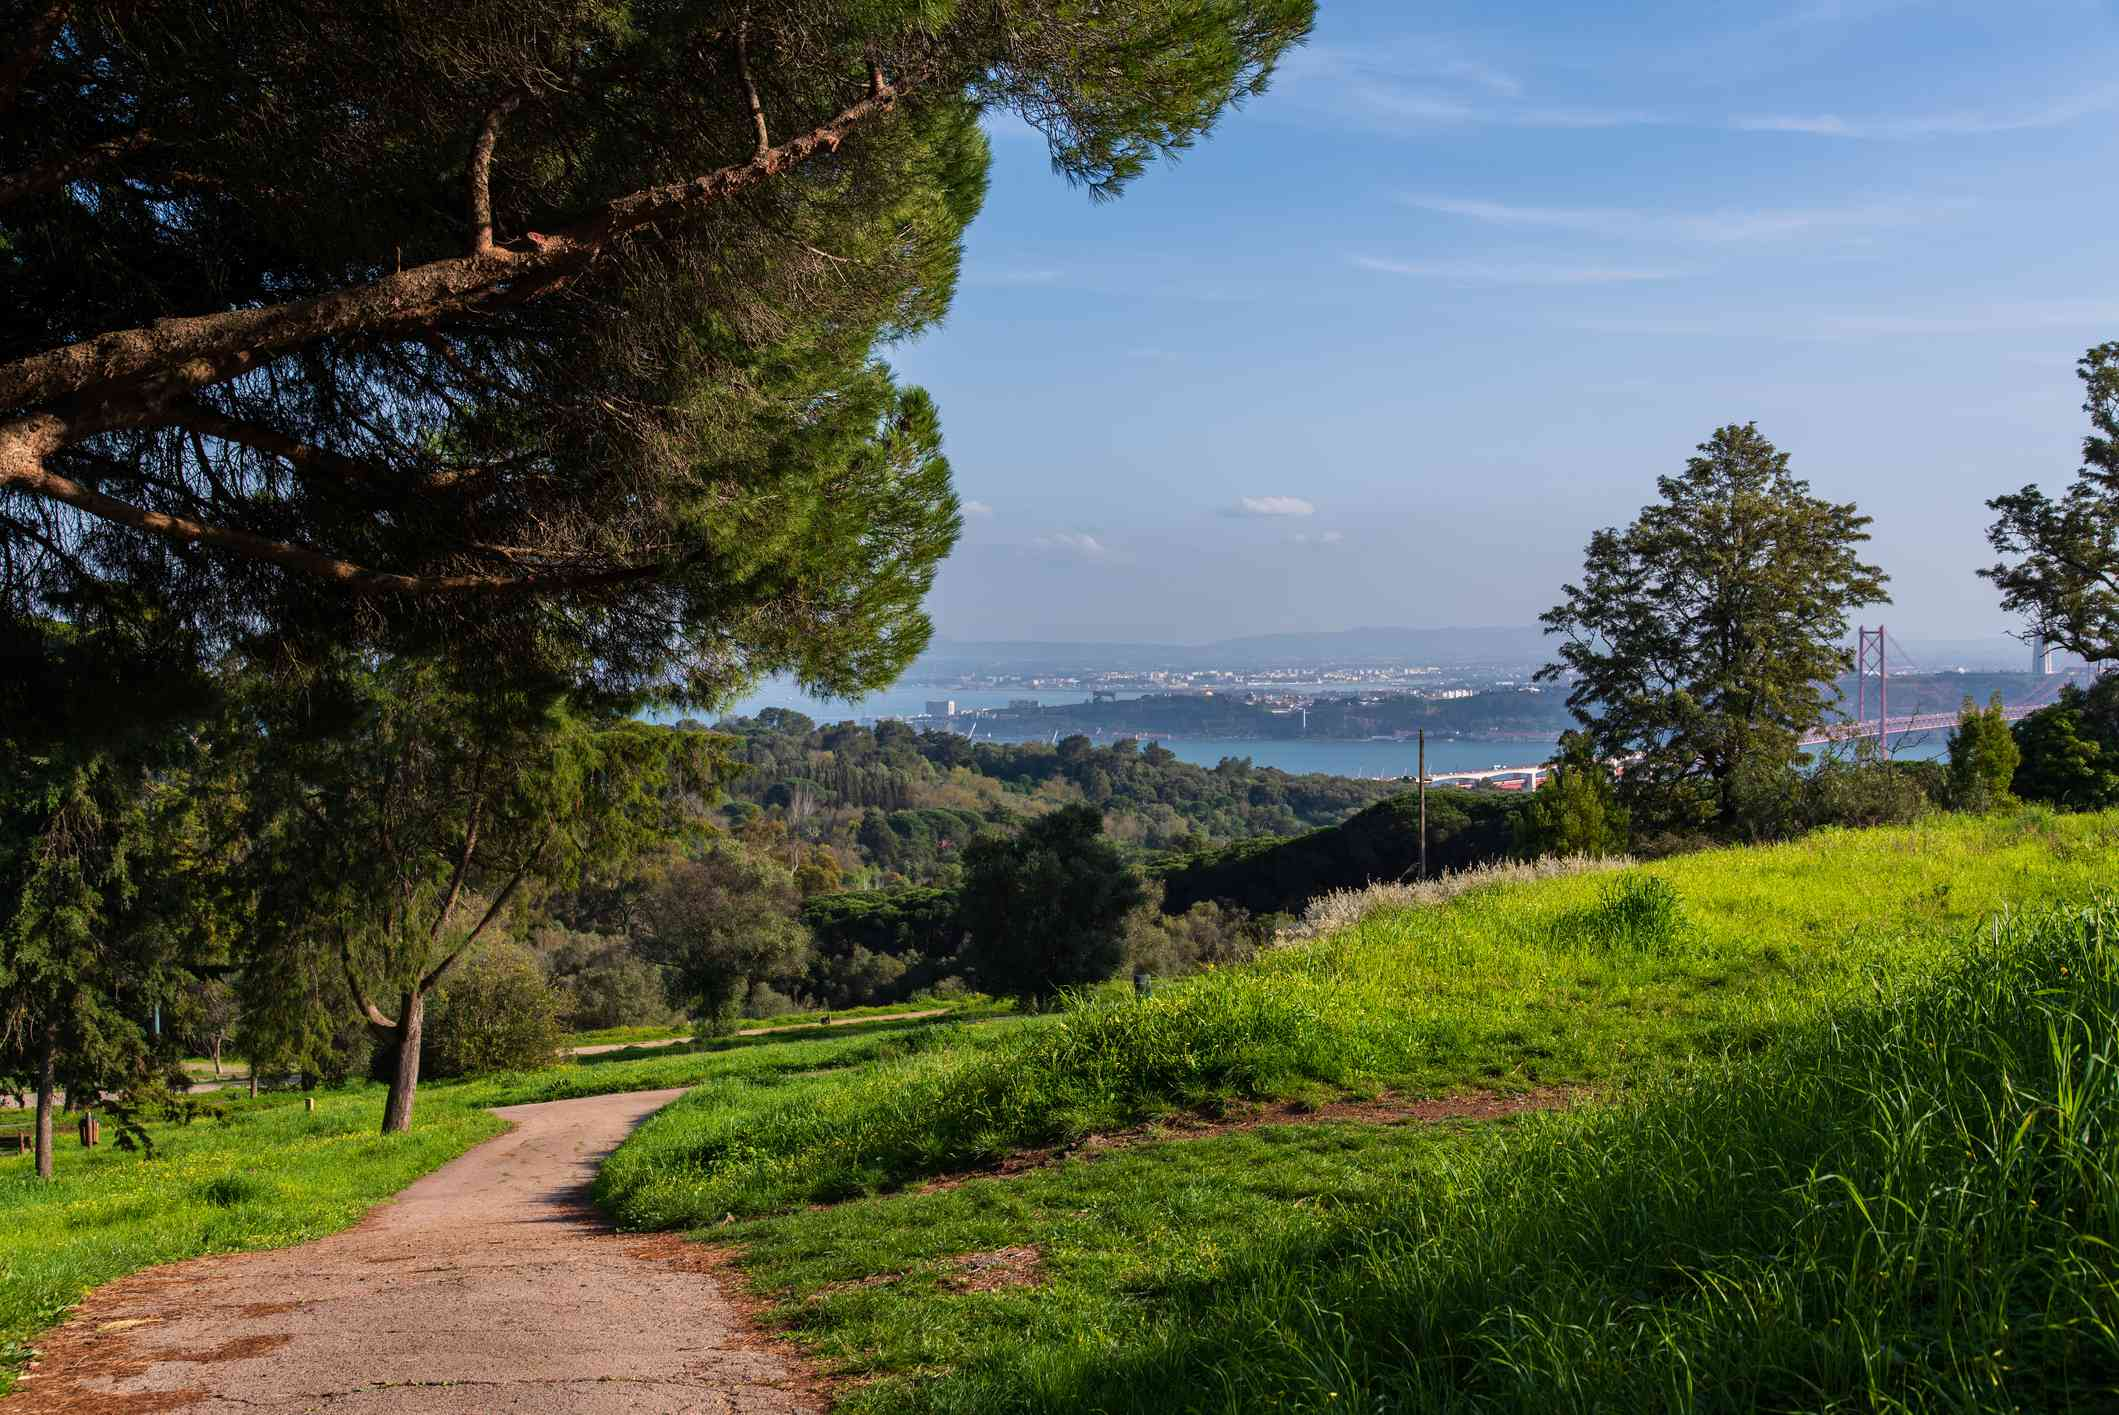 A path in Monsanto Park in Lisbon with grassy hills and lush shade trees and a view f the ocean in the distance